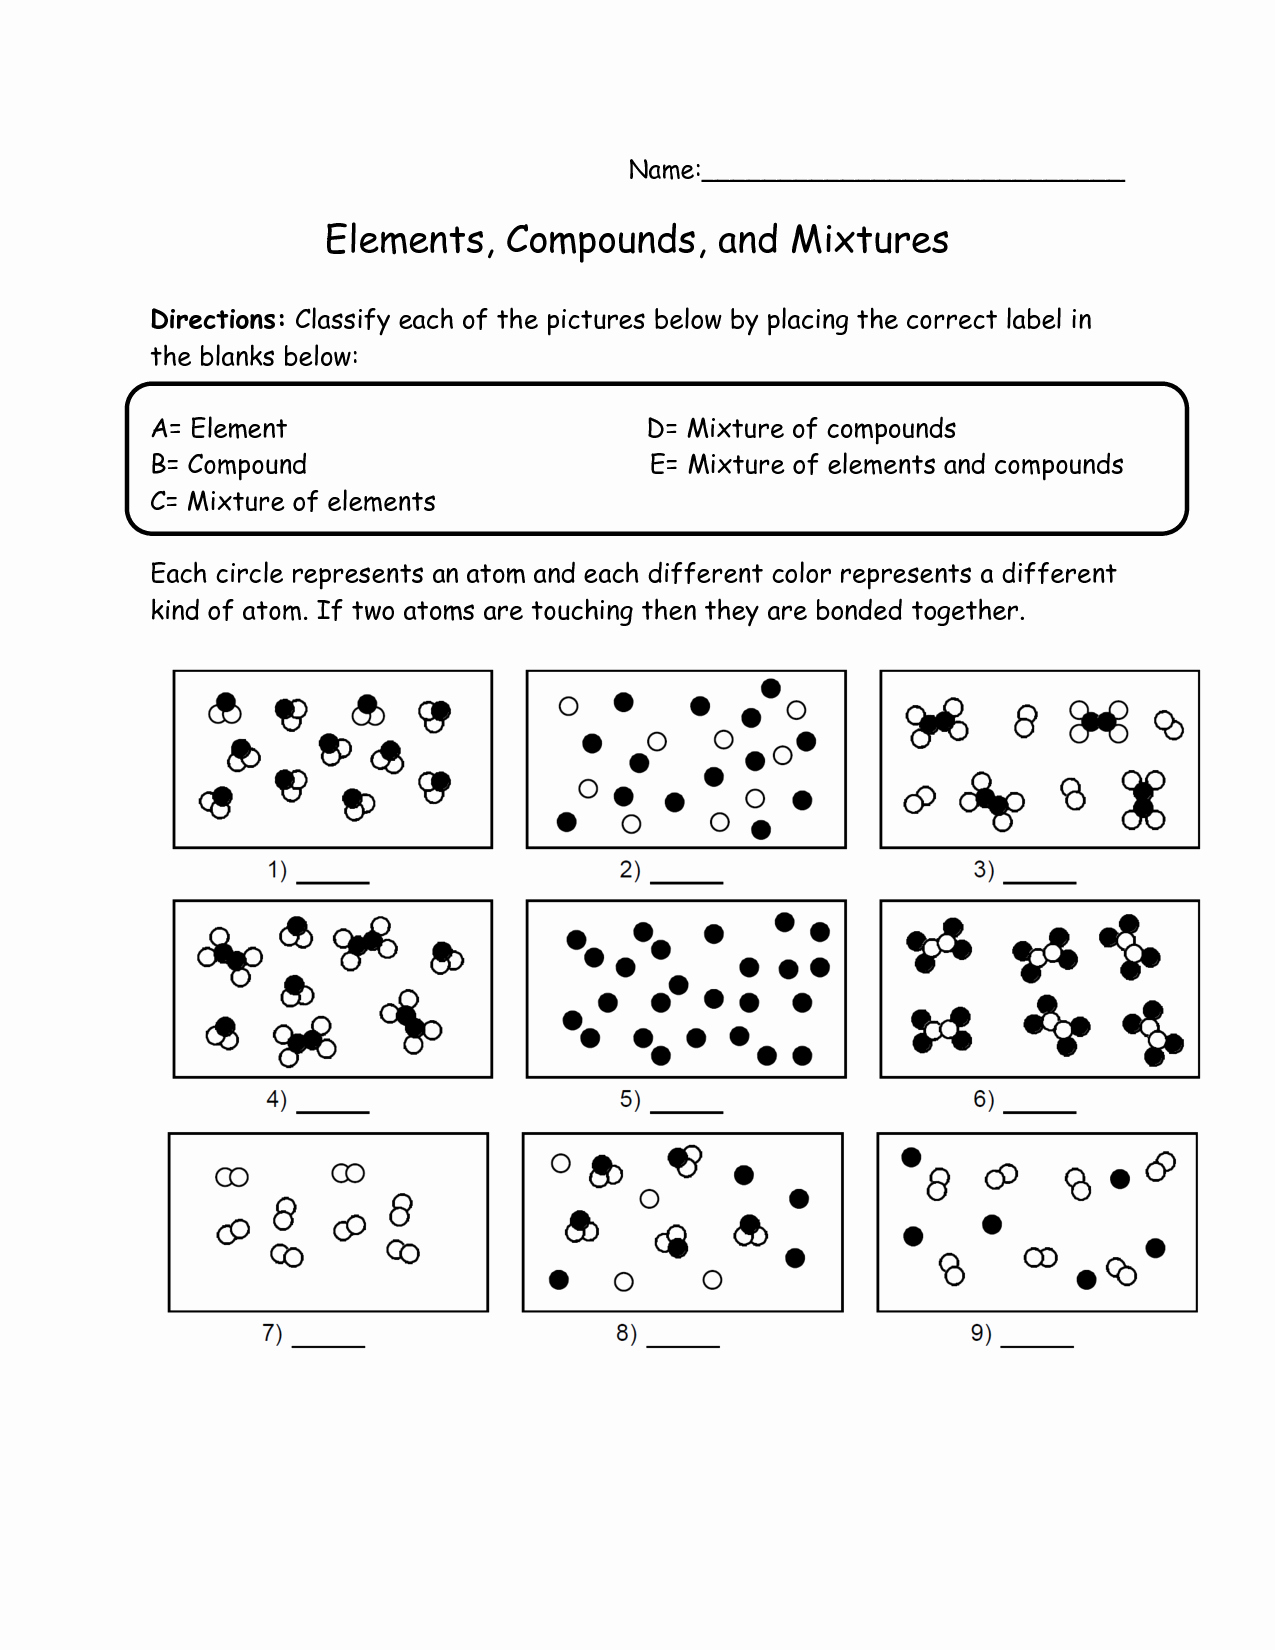 50 Element Compound Mixture Worksheet